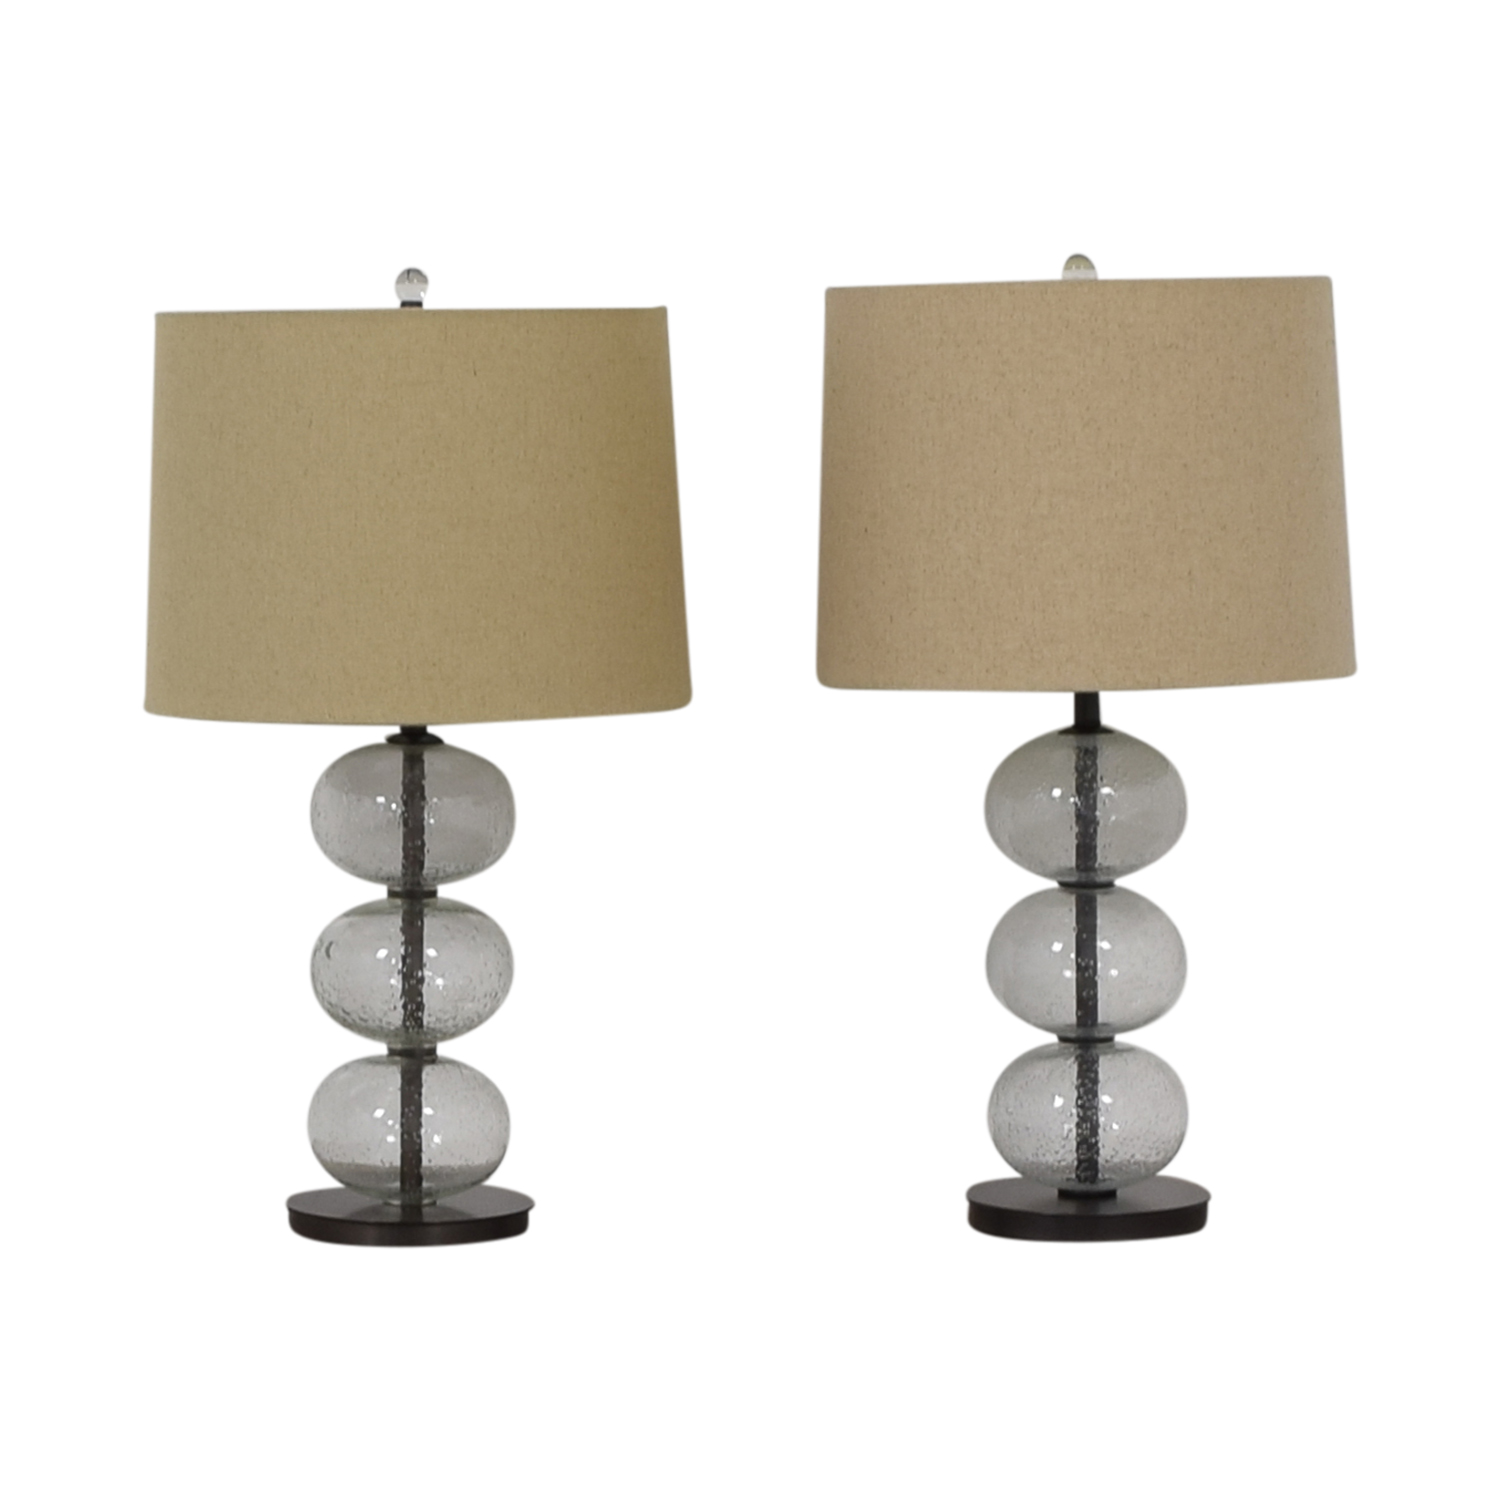 West Elm Abacus Lamps / Lamps